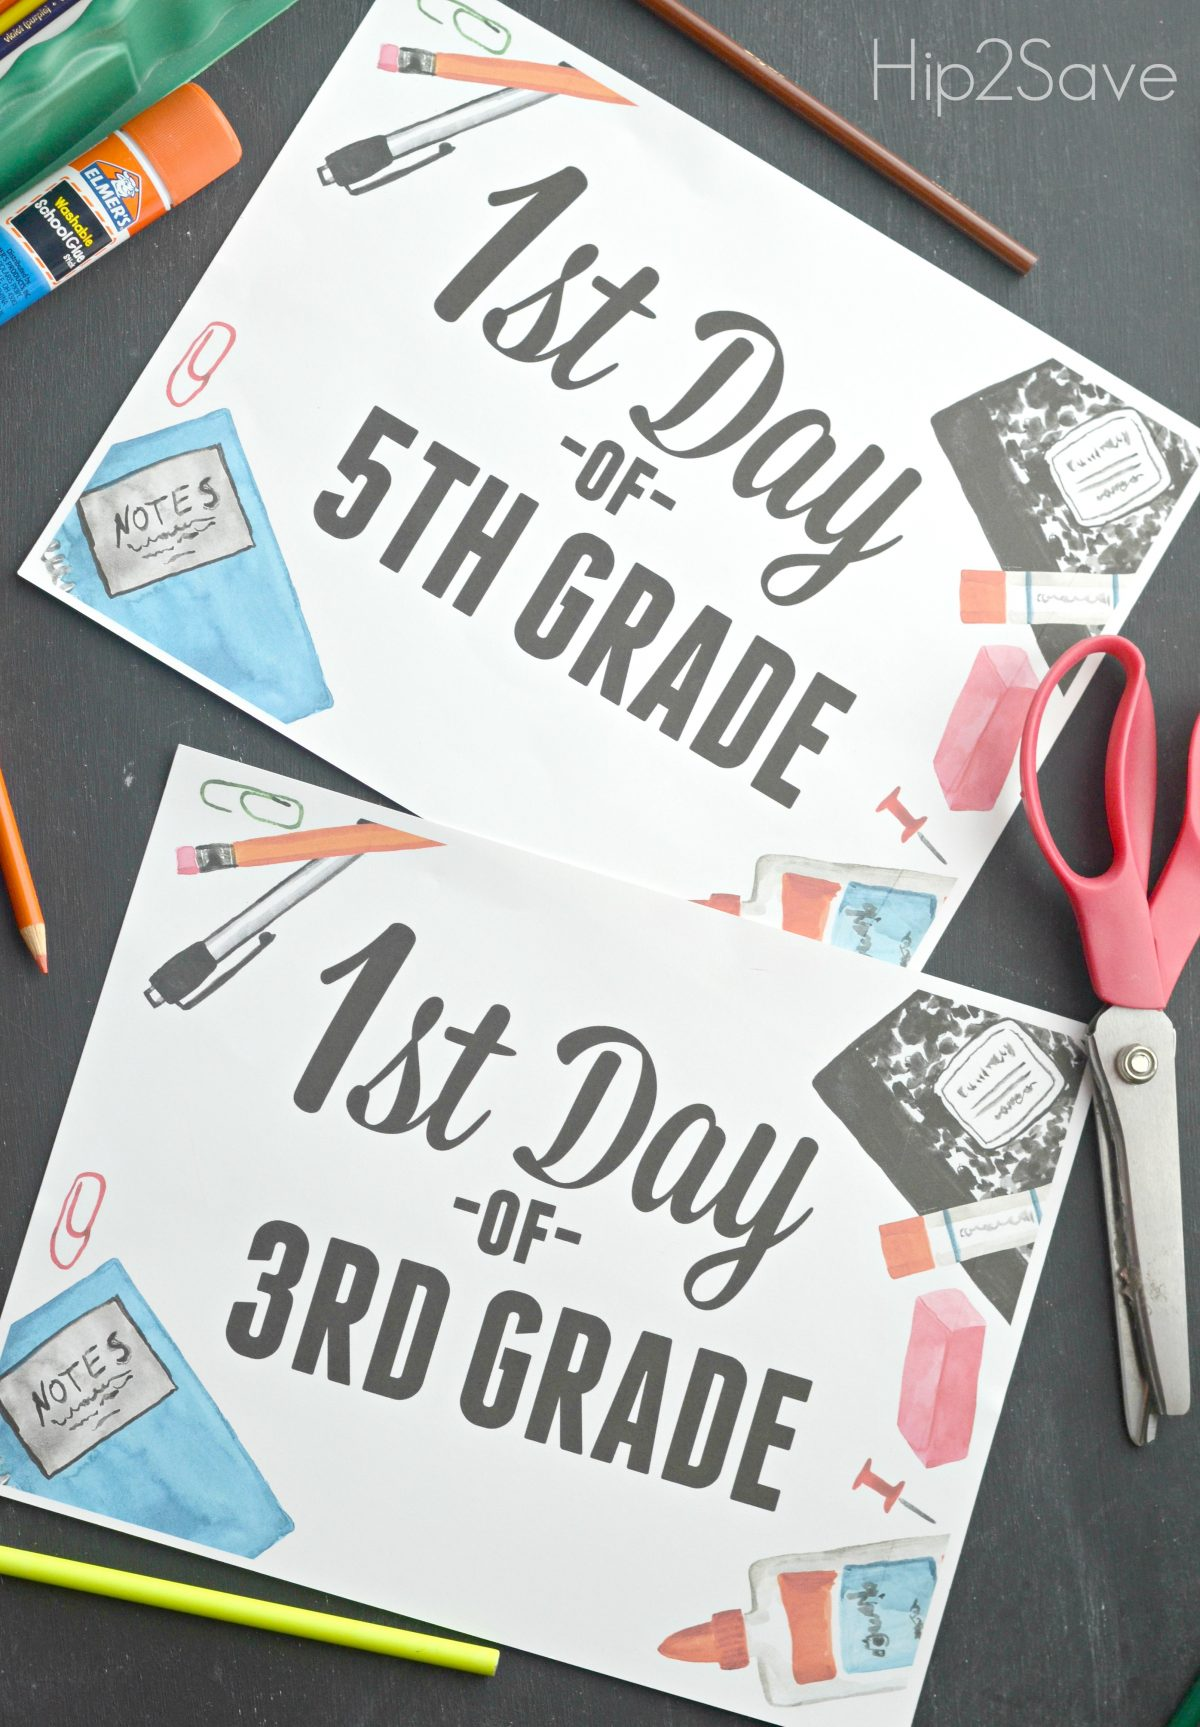 picture relating to First Day of 5th Grade Printable identified as No cost Initial Working day of University Printable Indicators - Hip2Help save